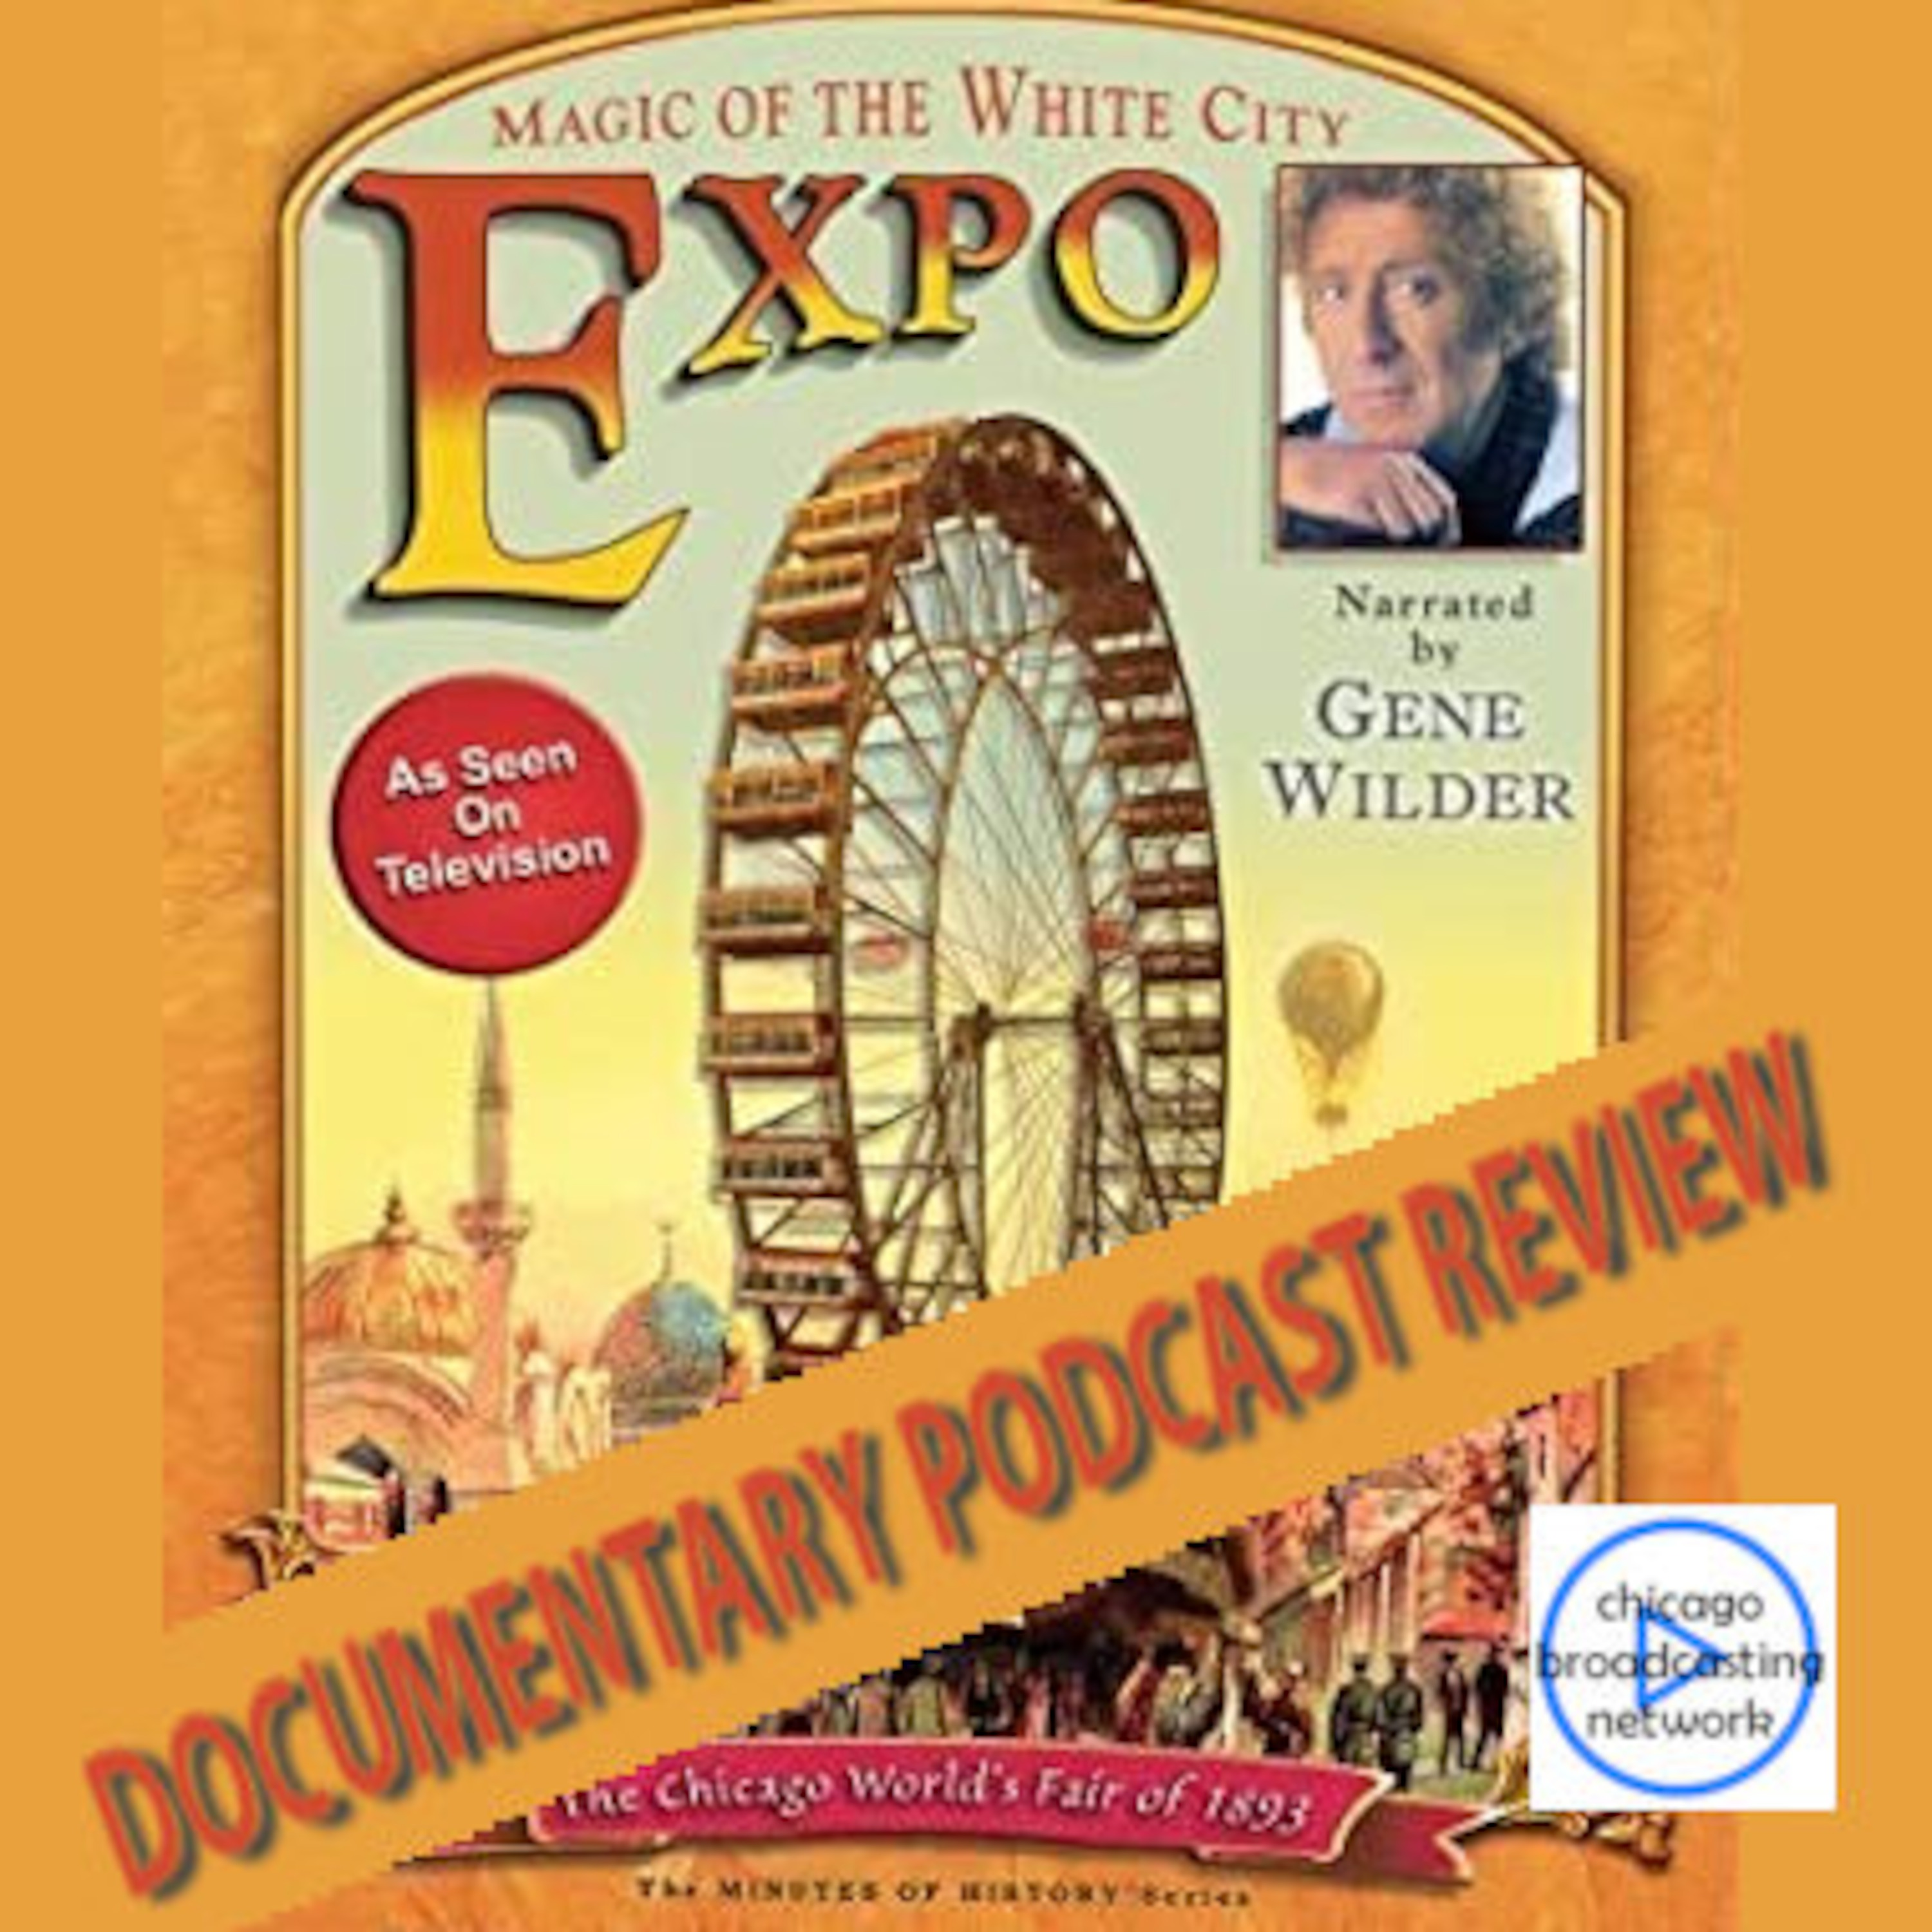 EXPO - MAGIC OF THE WHITE CITY | Documentary Review